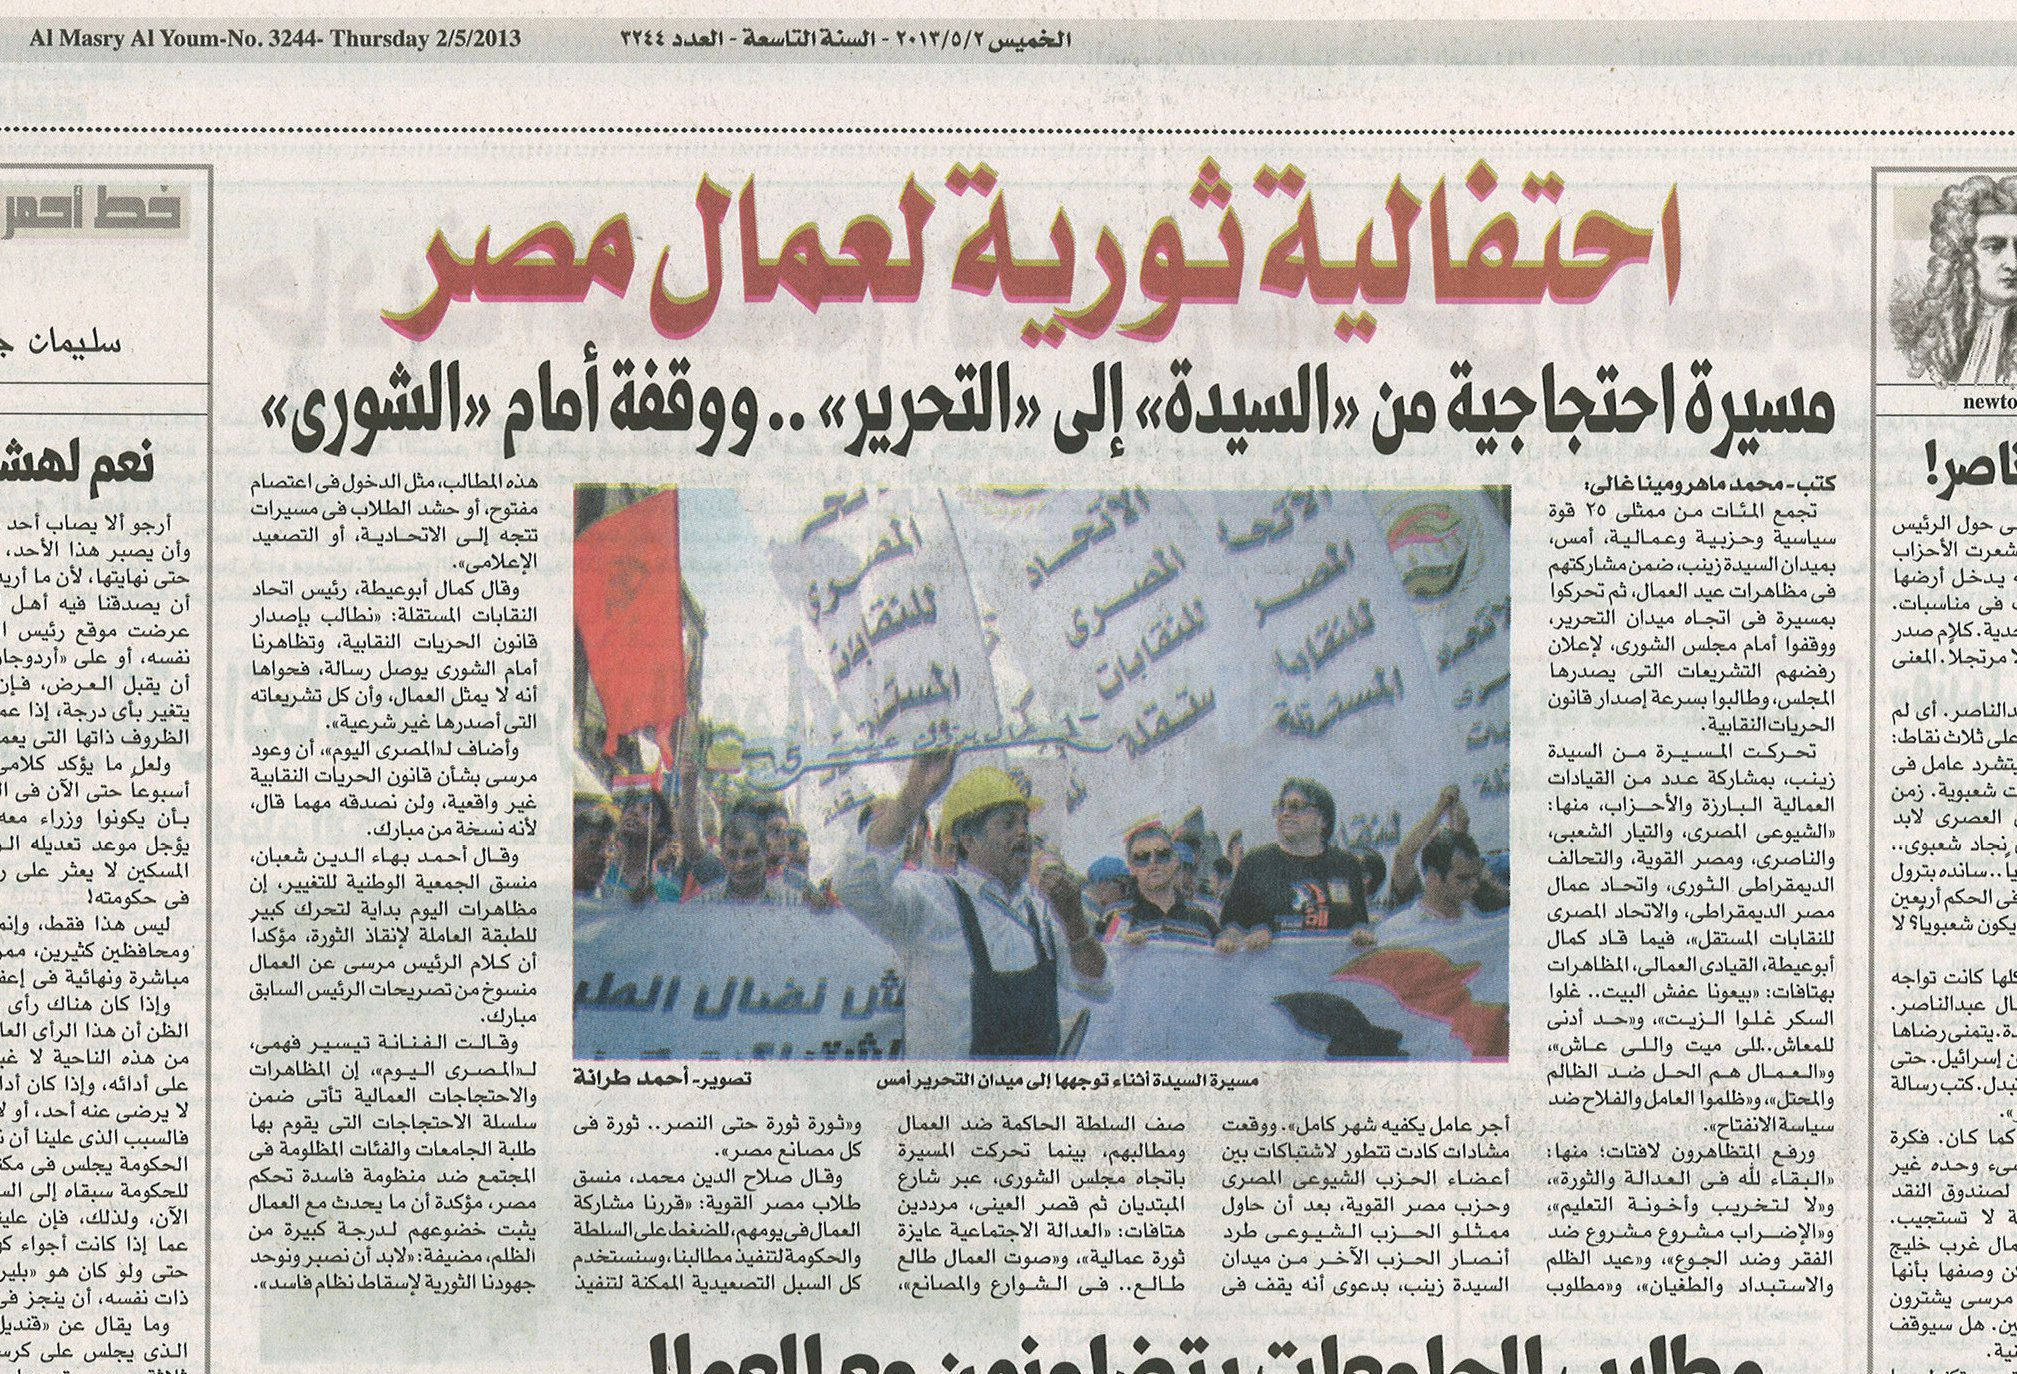 Egyptian workers raise their free voices   IndustriALL